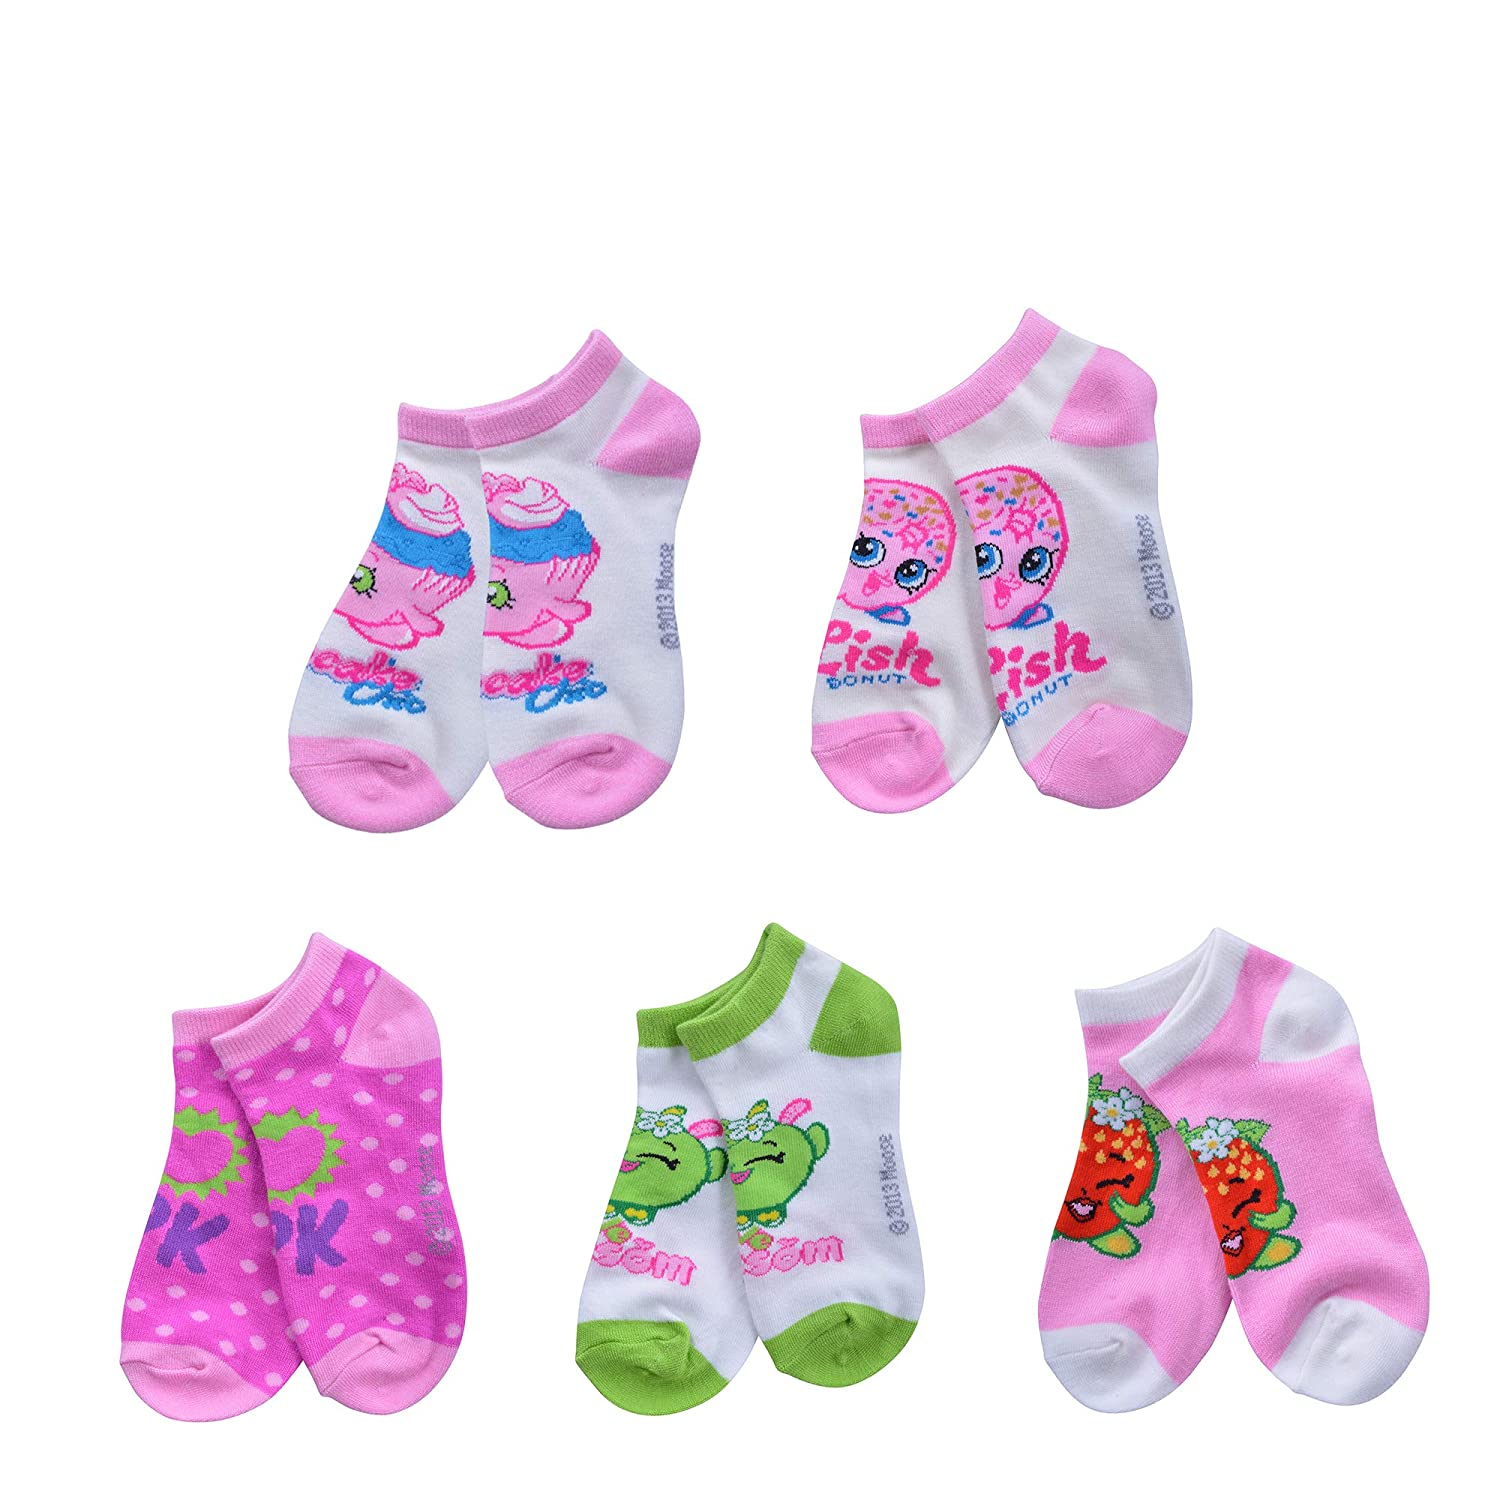 fcac120bdc5 BLEND FABRIC  It features a perfect blend of 78% acrylic 20% polyester 2%  spandex. EASY TO CARE  Clean these socks by simply putting them in the  machine